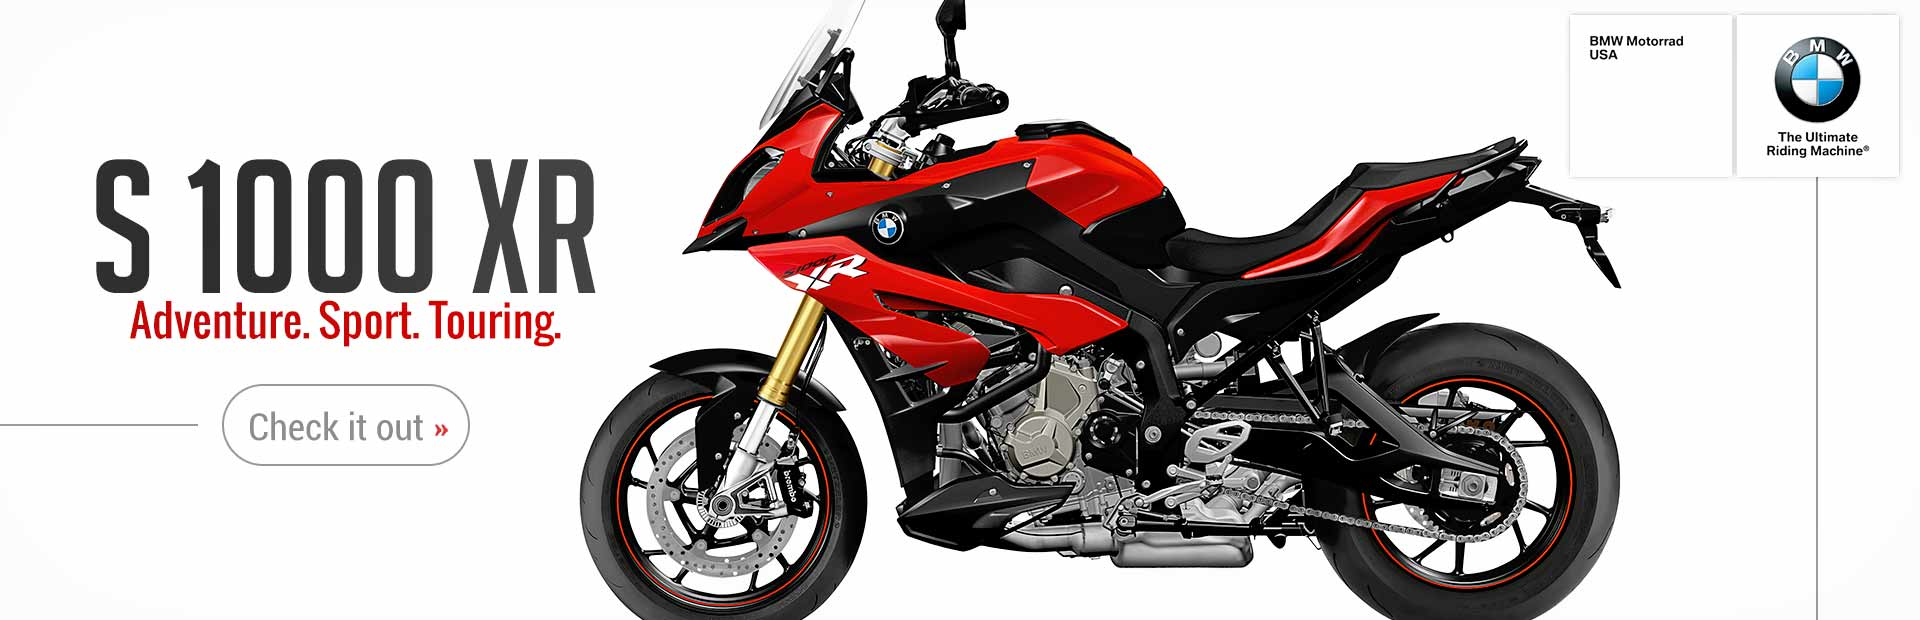 Bikes Plus Memphis Tennessee Click here to view the BMW S